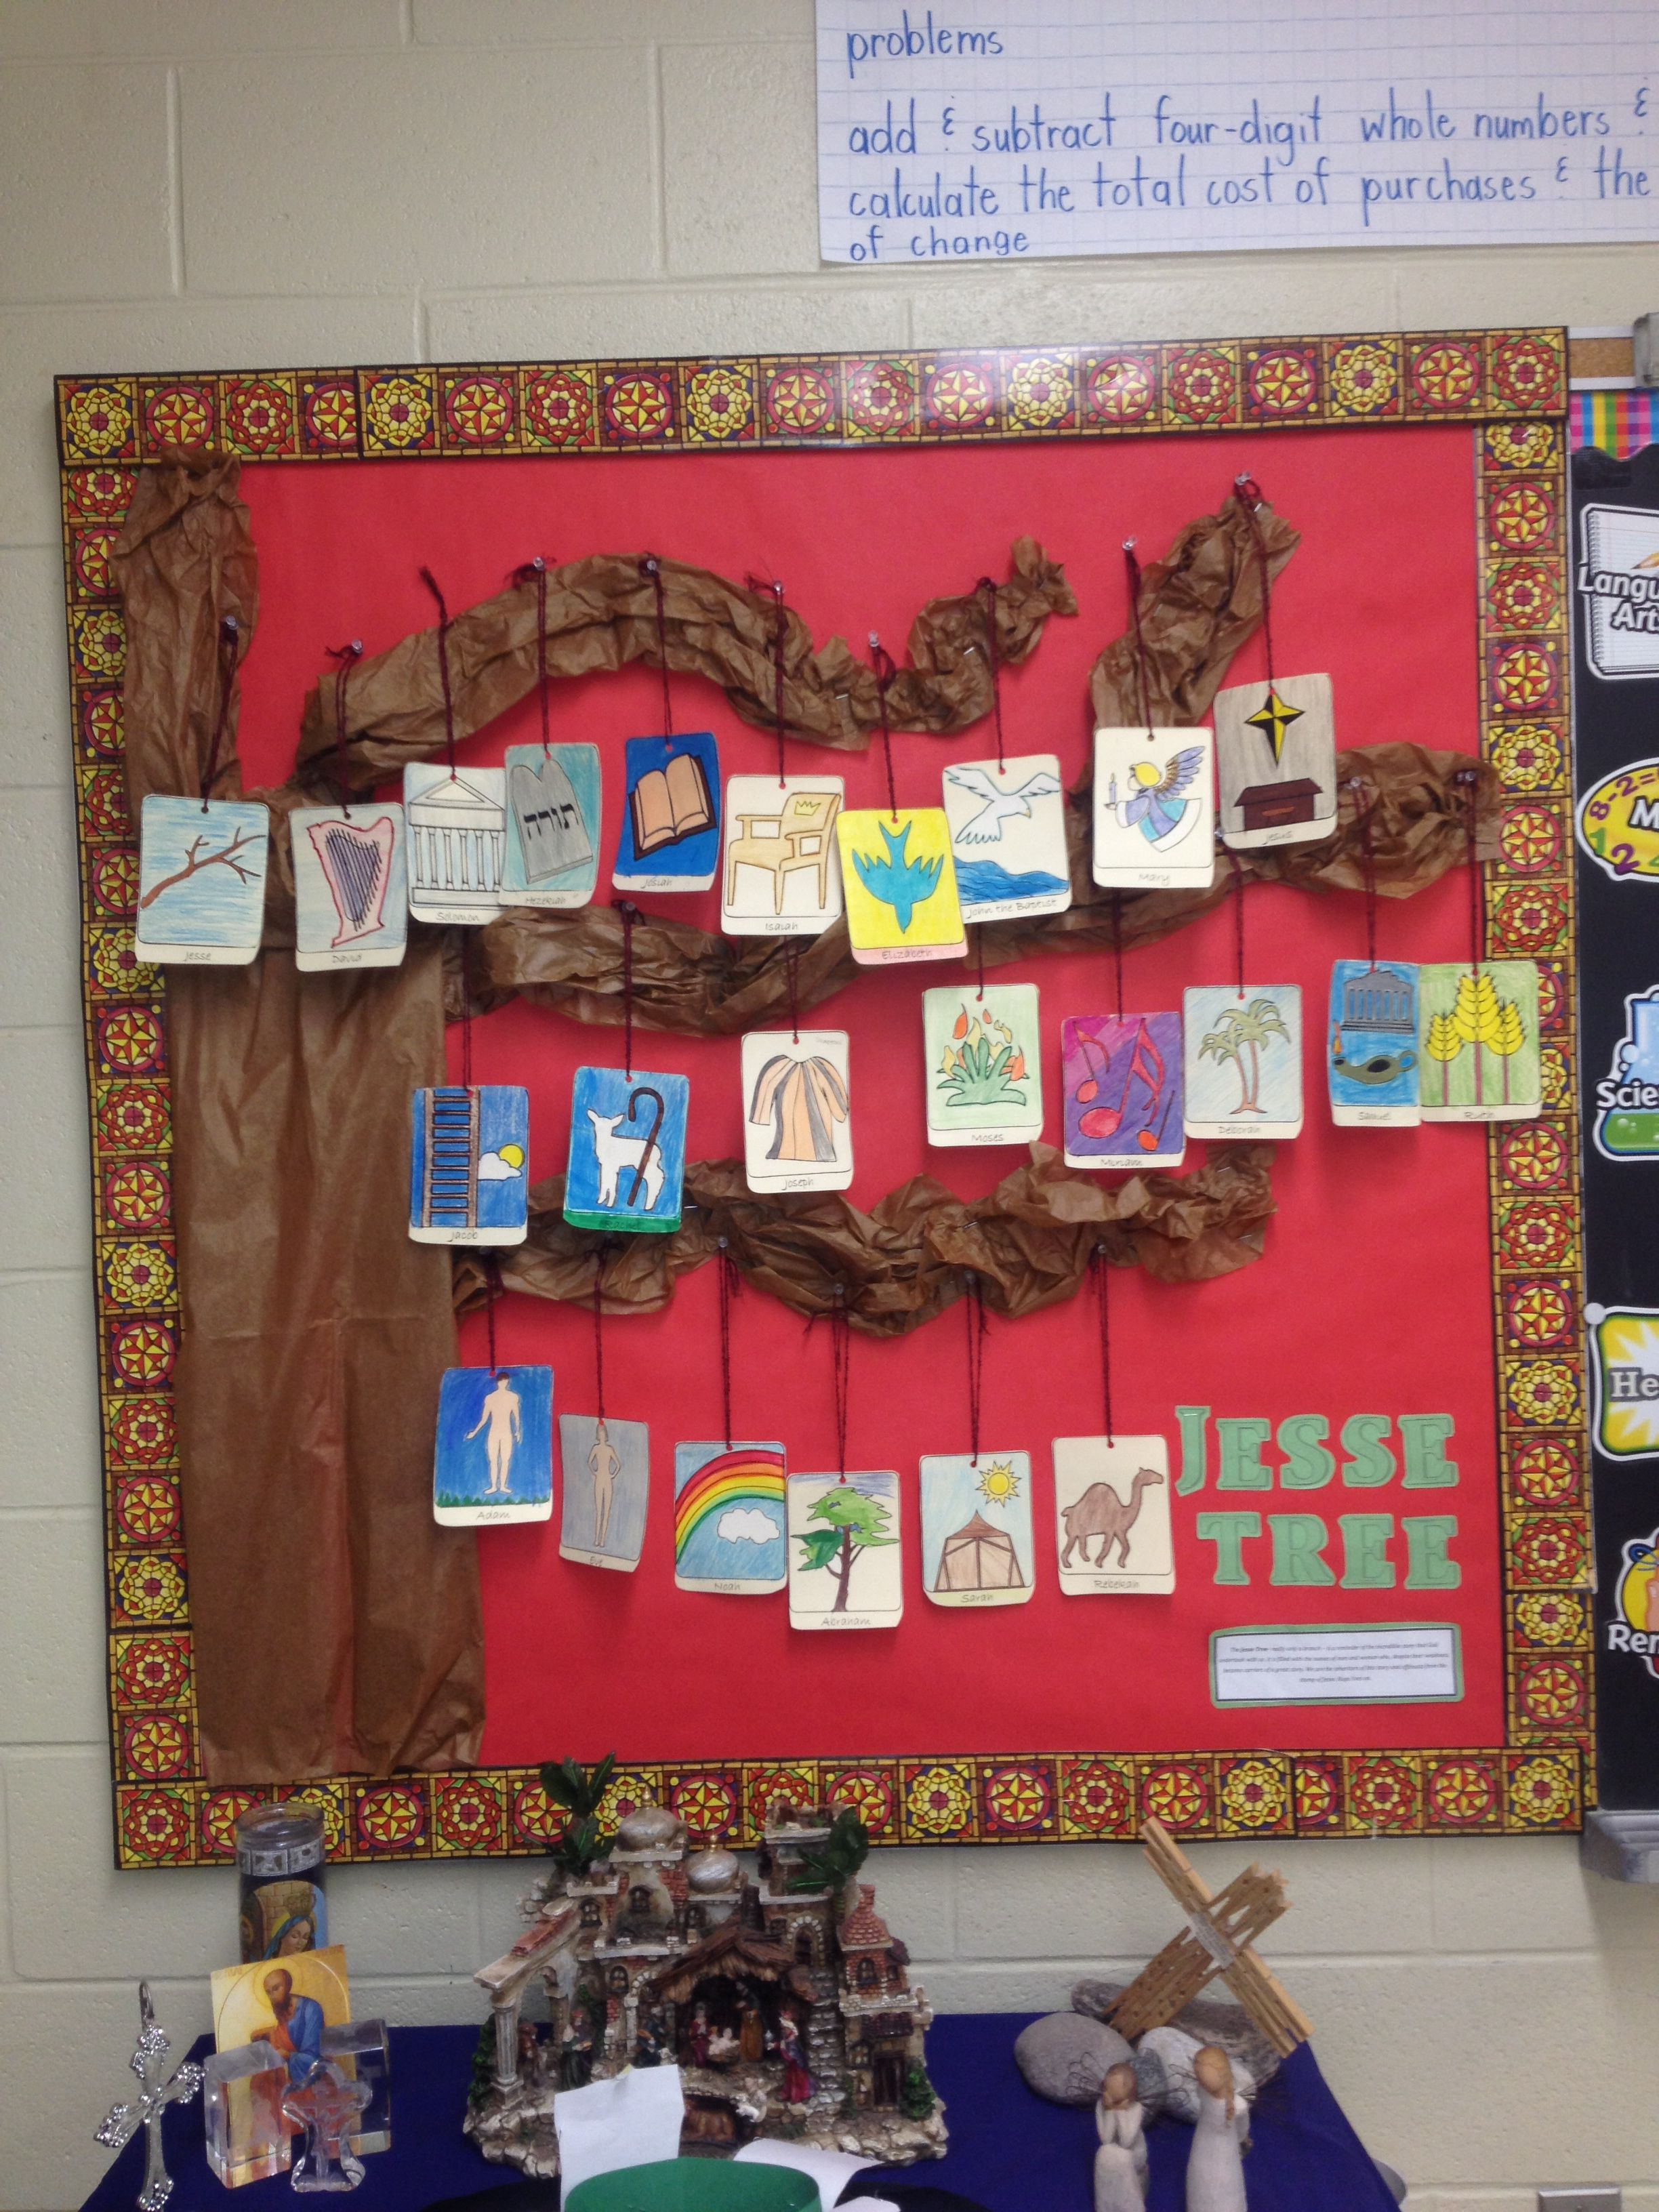 Grade 5s Jesse Tree Bulletin Board Bulletin Board Tree